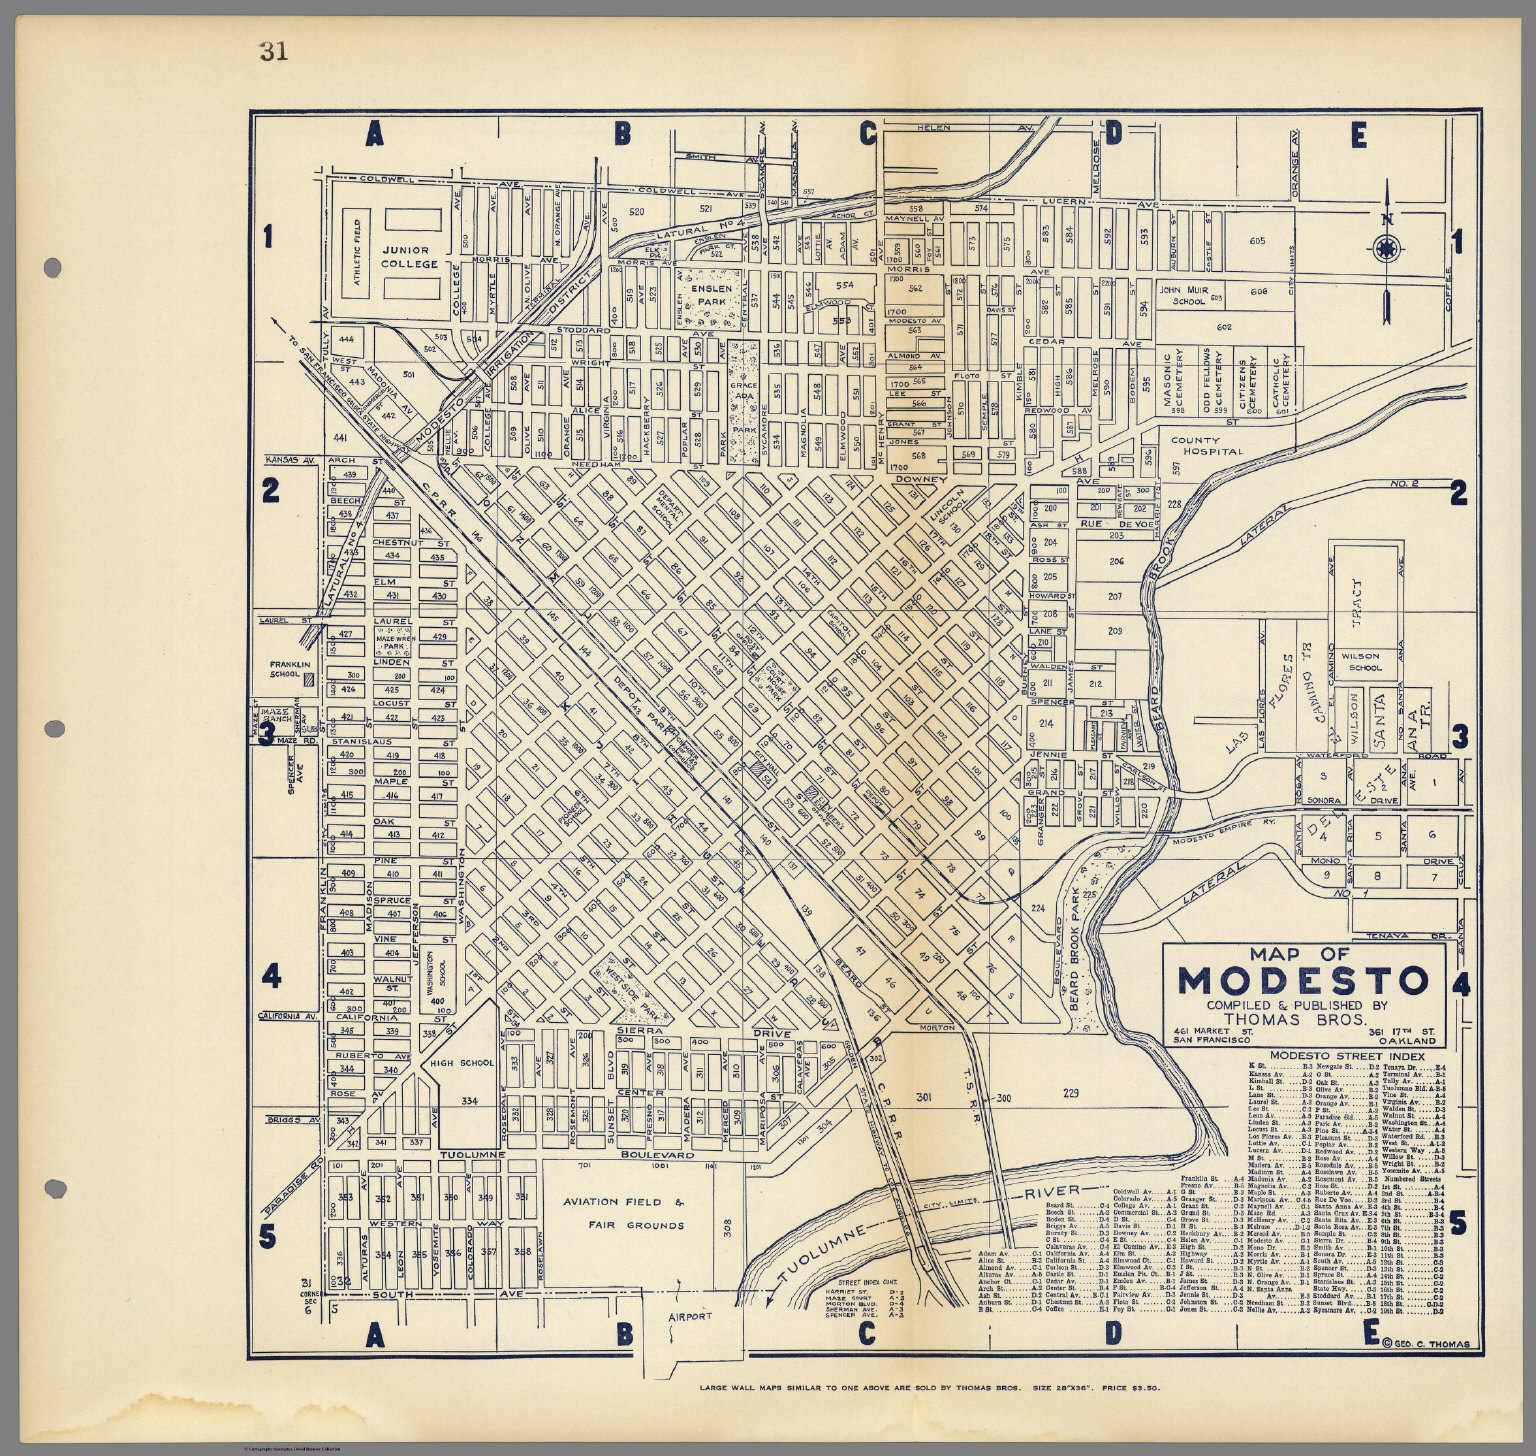 map of modesto california compiled  published by thomas bros. map of modesto california compiled  published by thomas bros